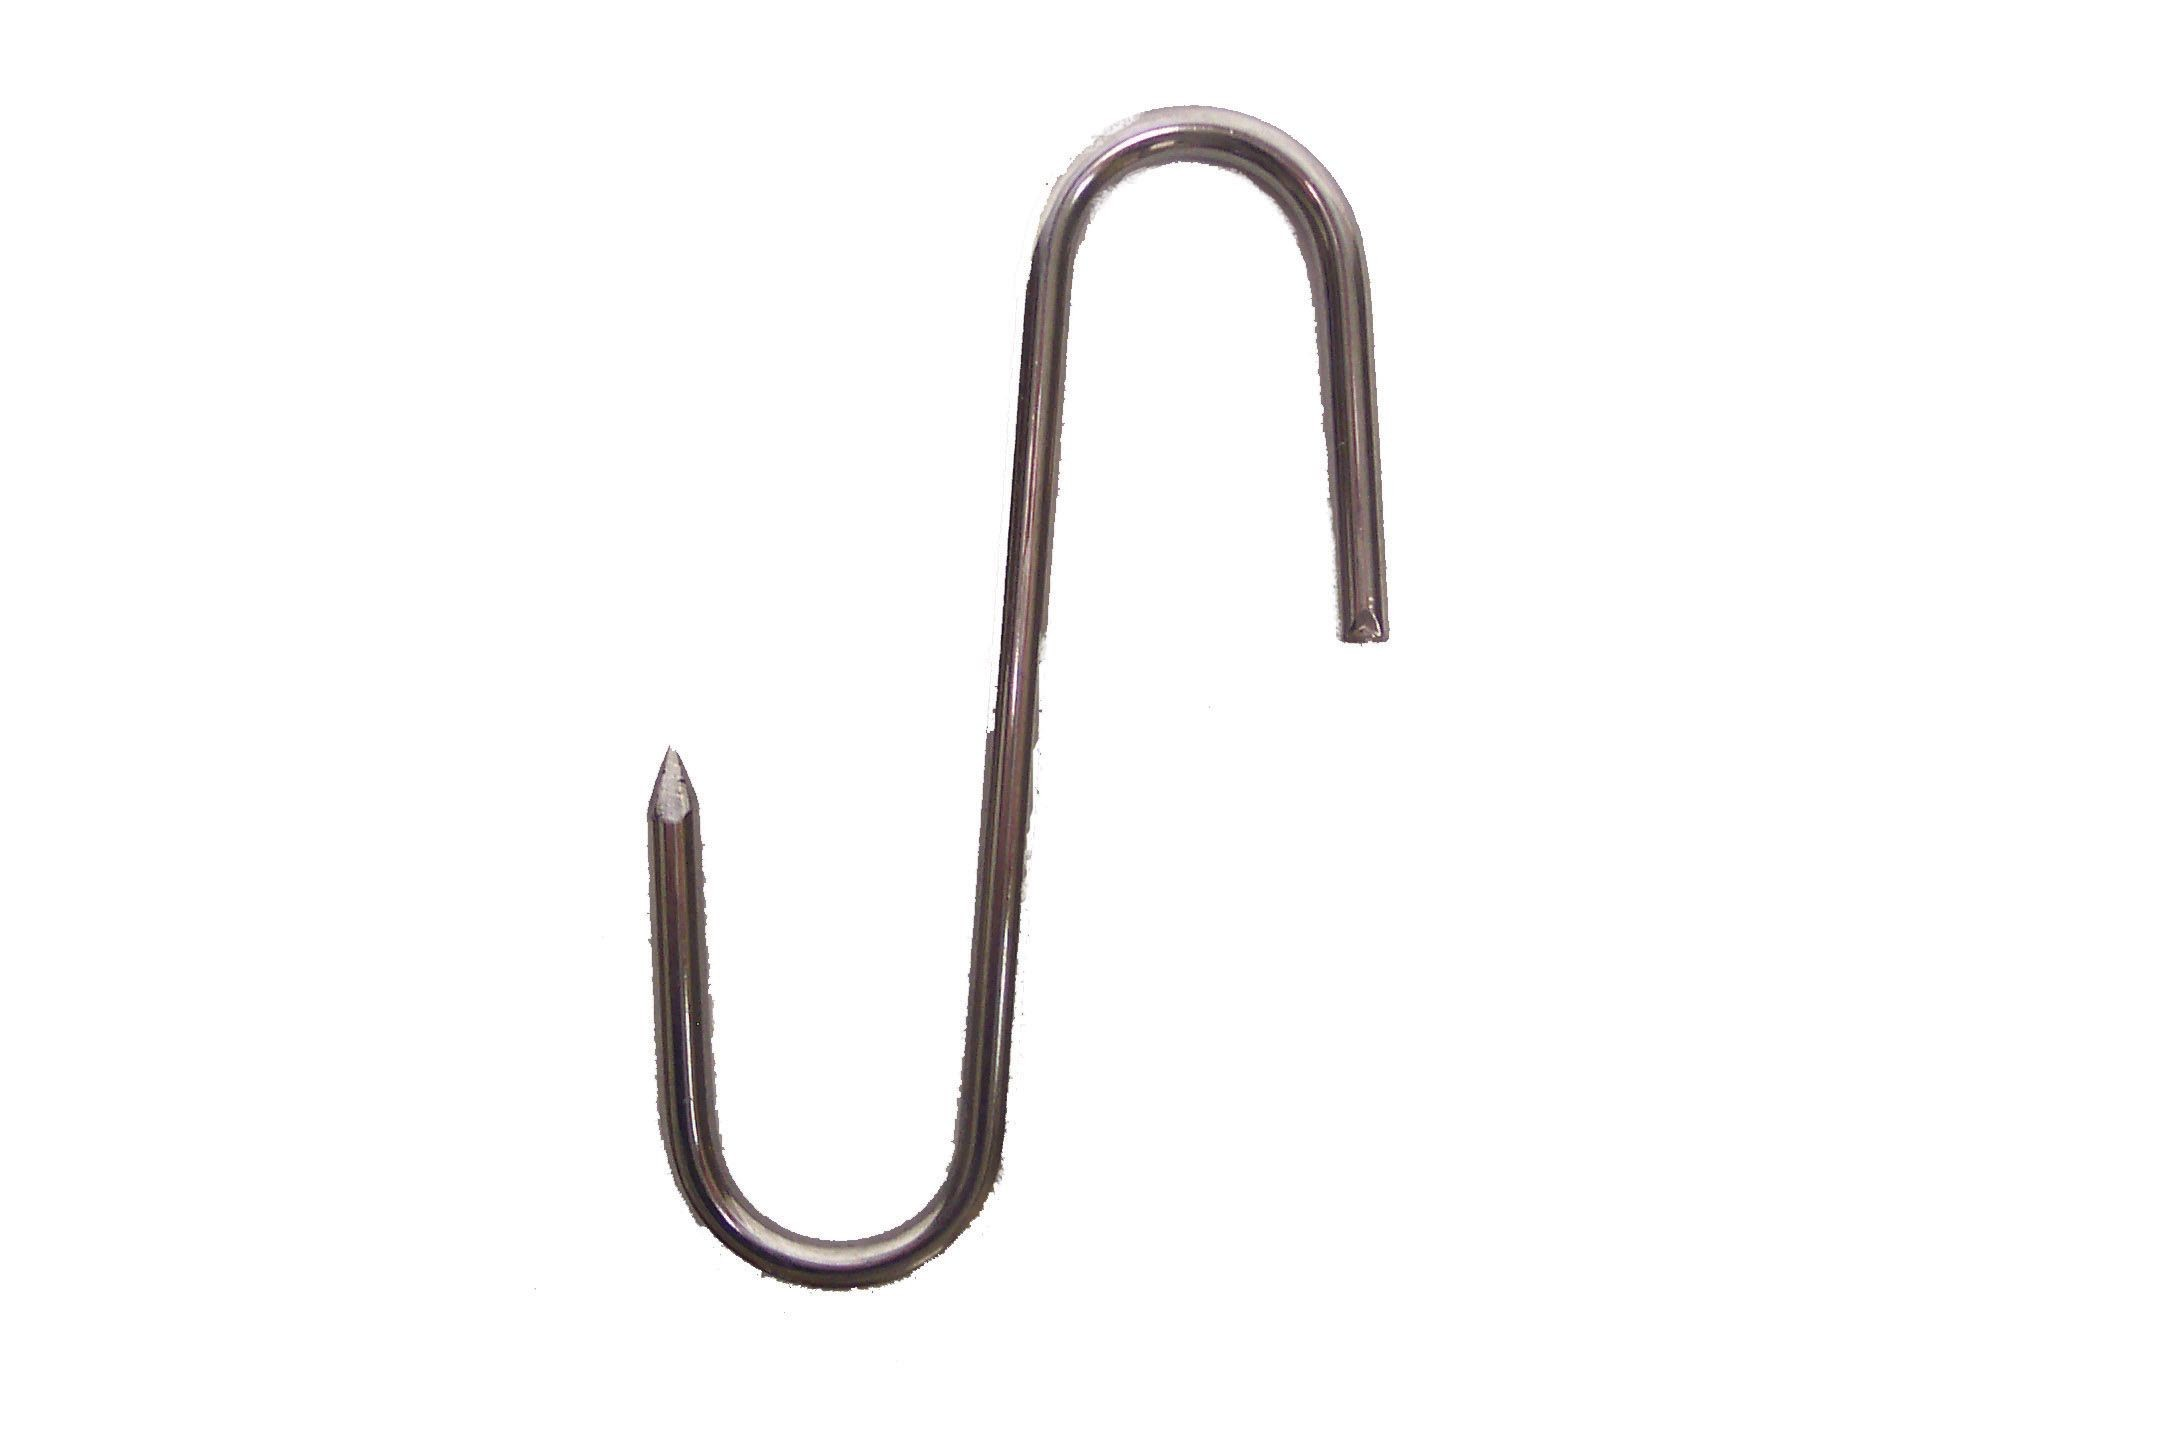 Stainless Steel 4 Mm. Gauge Meat Hook - 3-1/8